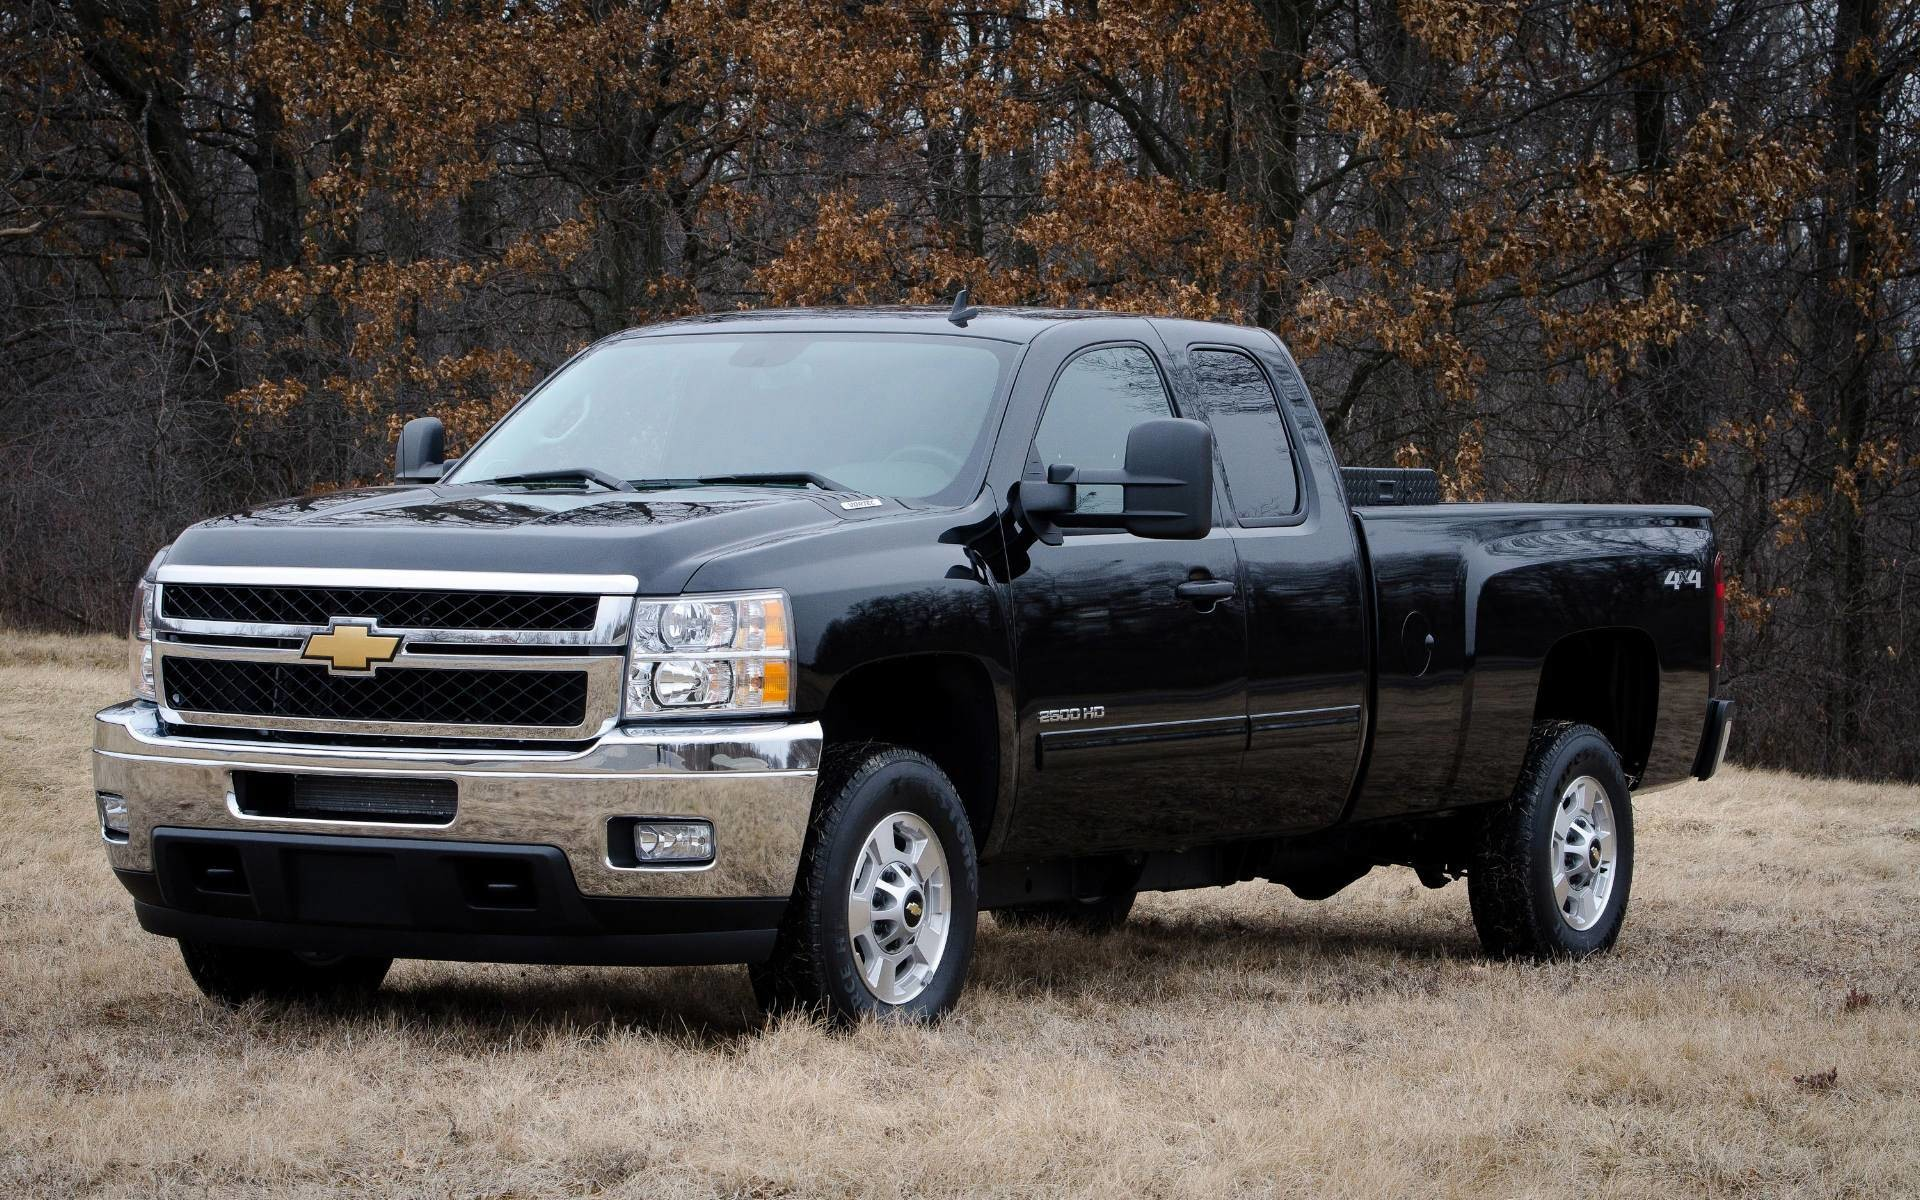 1920x1200 2013 Chevrolet Silverado Wallpapers | High Quality Wallpapers